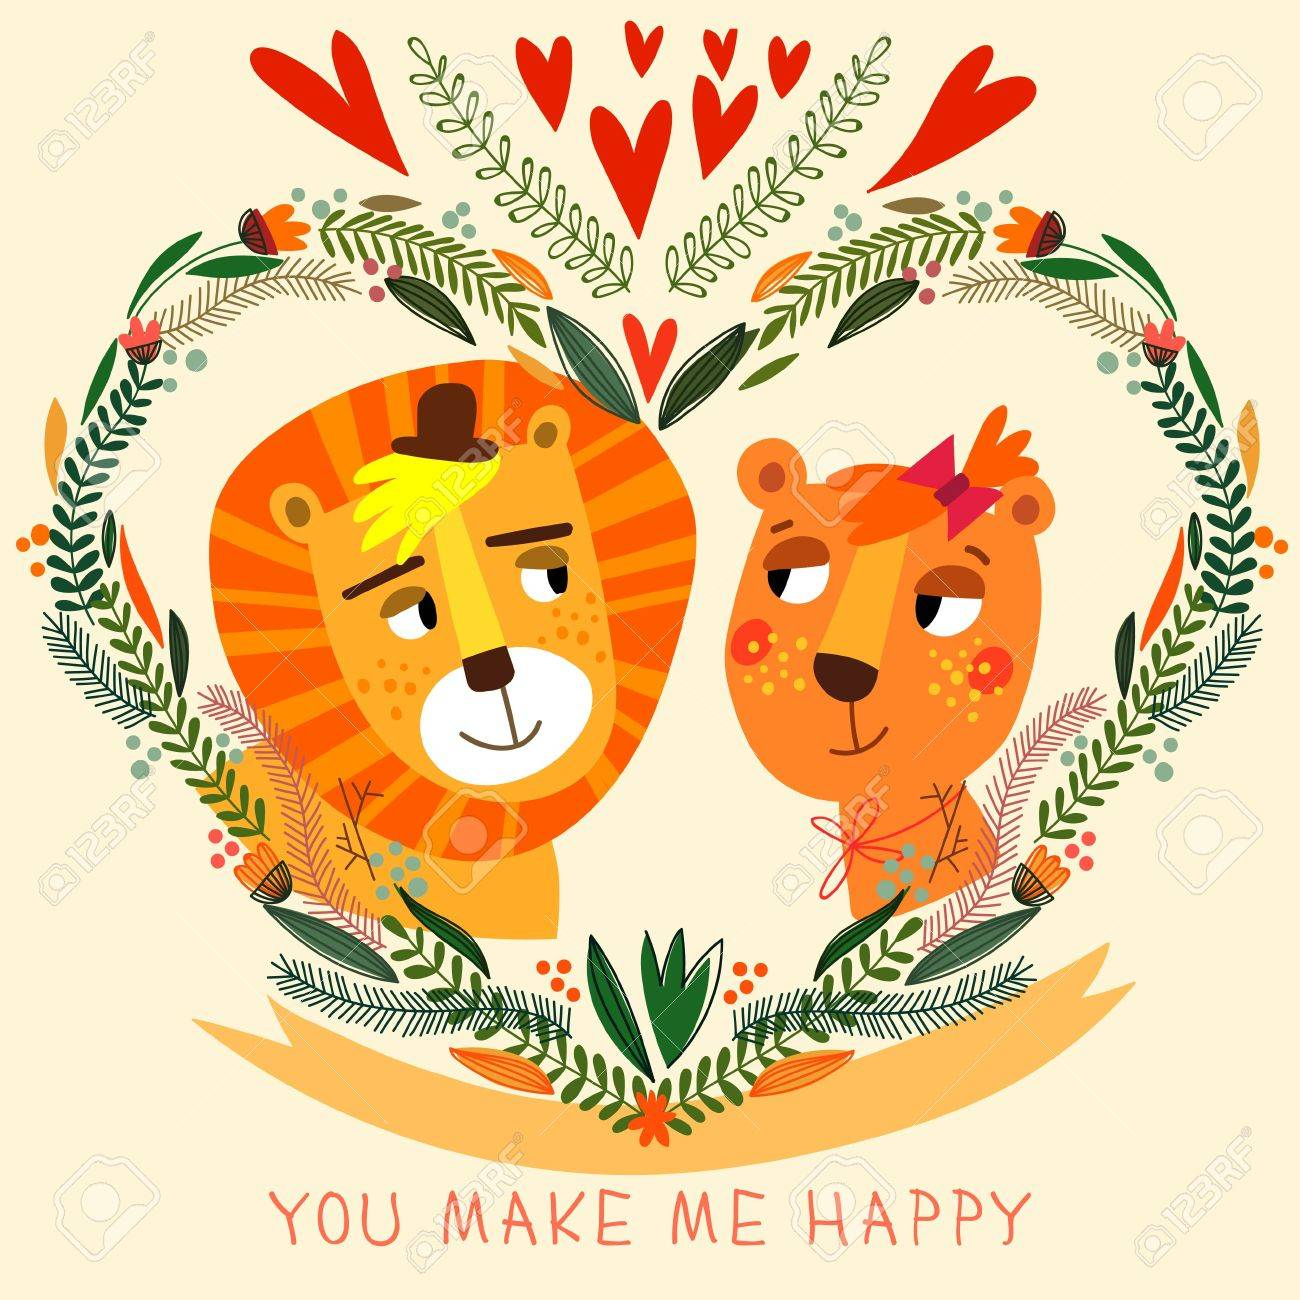 lion heart images u0026 stock pictures royalty free lion heart photos